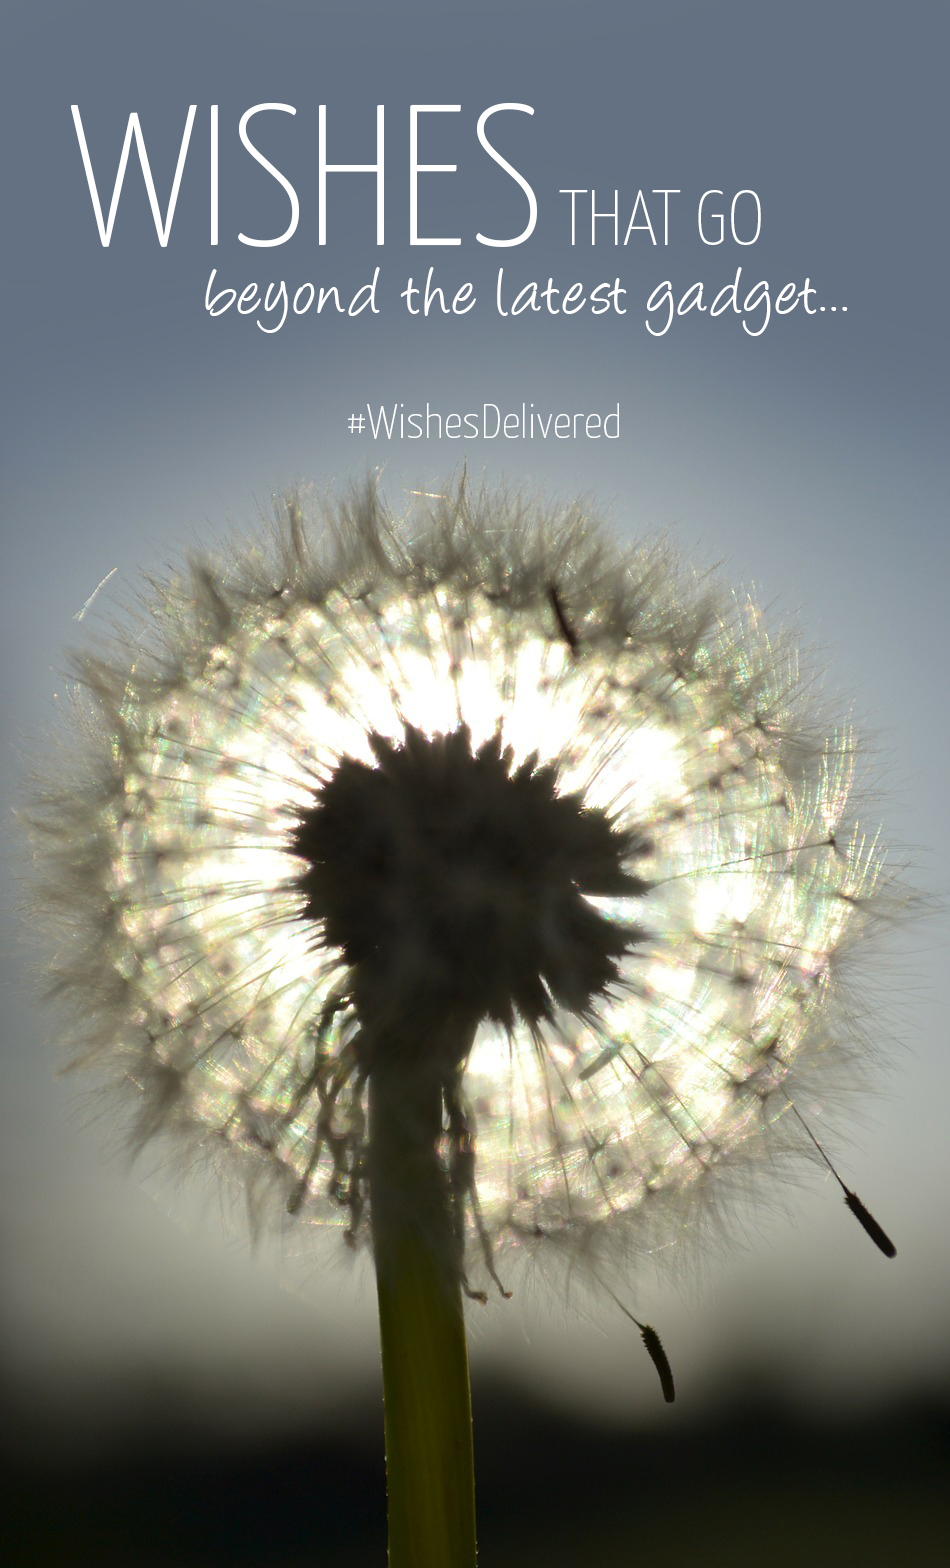 Join the Wishes Delivered campaign by sharing your wish! Click for more details (sponsored for a good cause)